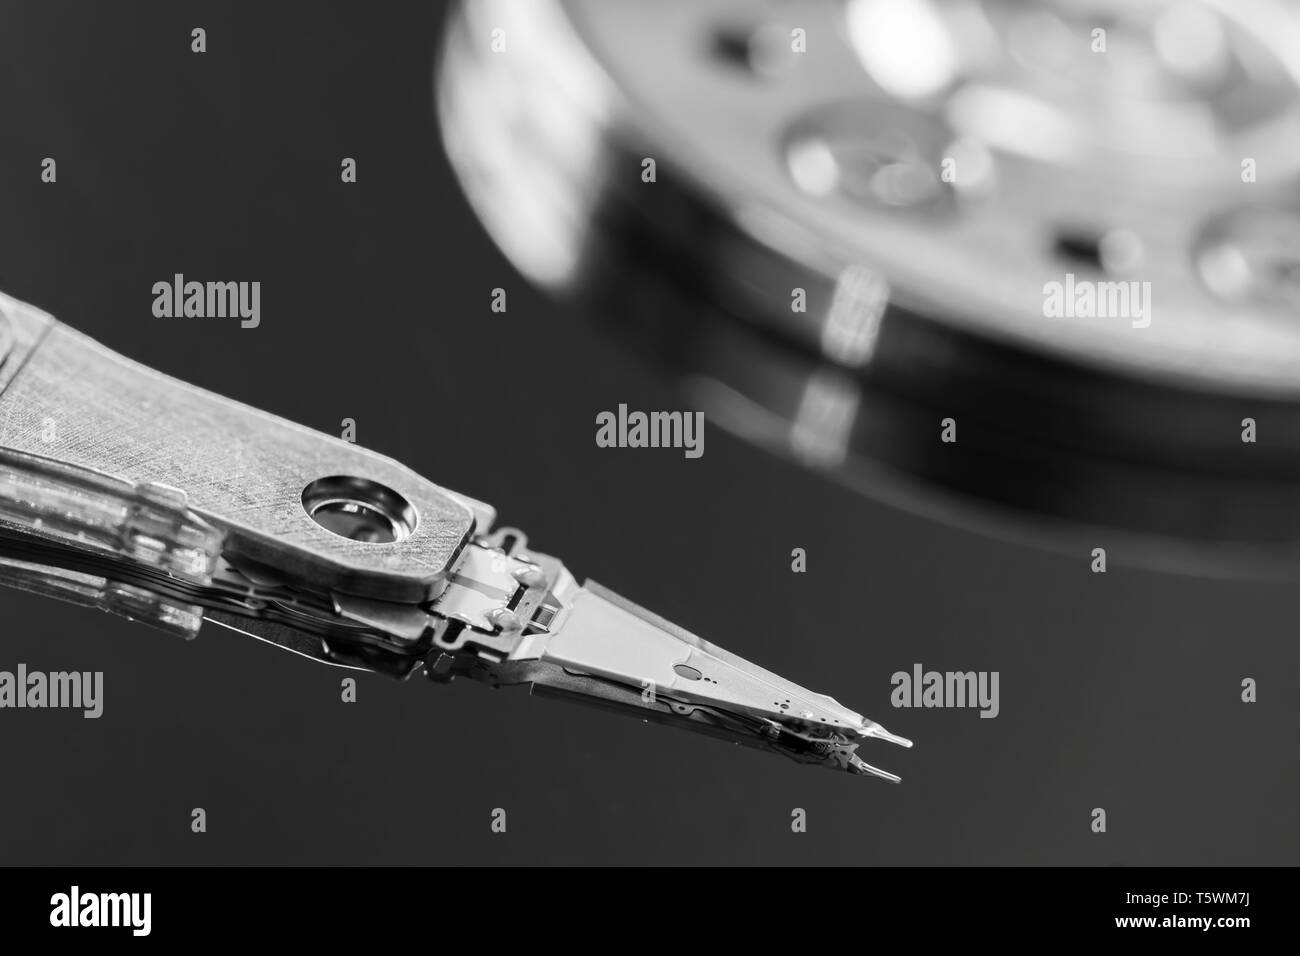 Macro black & white image of the actuator arm and read / write head reading and writing data from and to a computer hard disk drive (HDD) platter. B&W - Stock Image